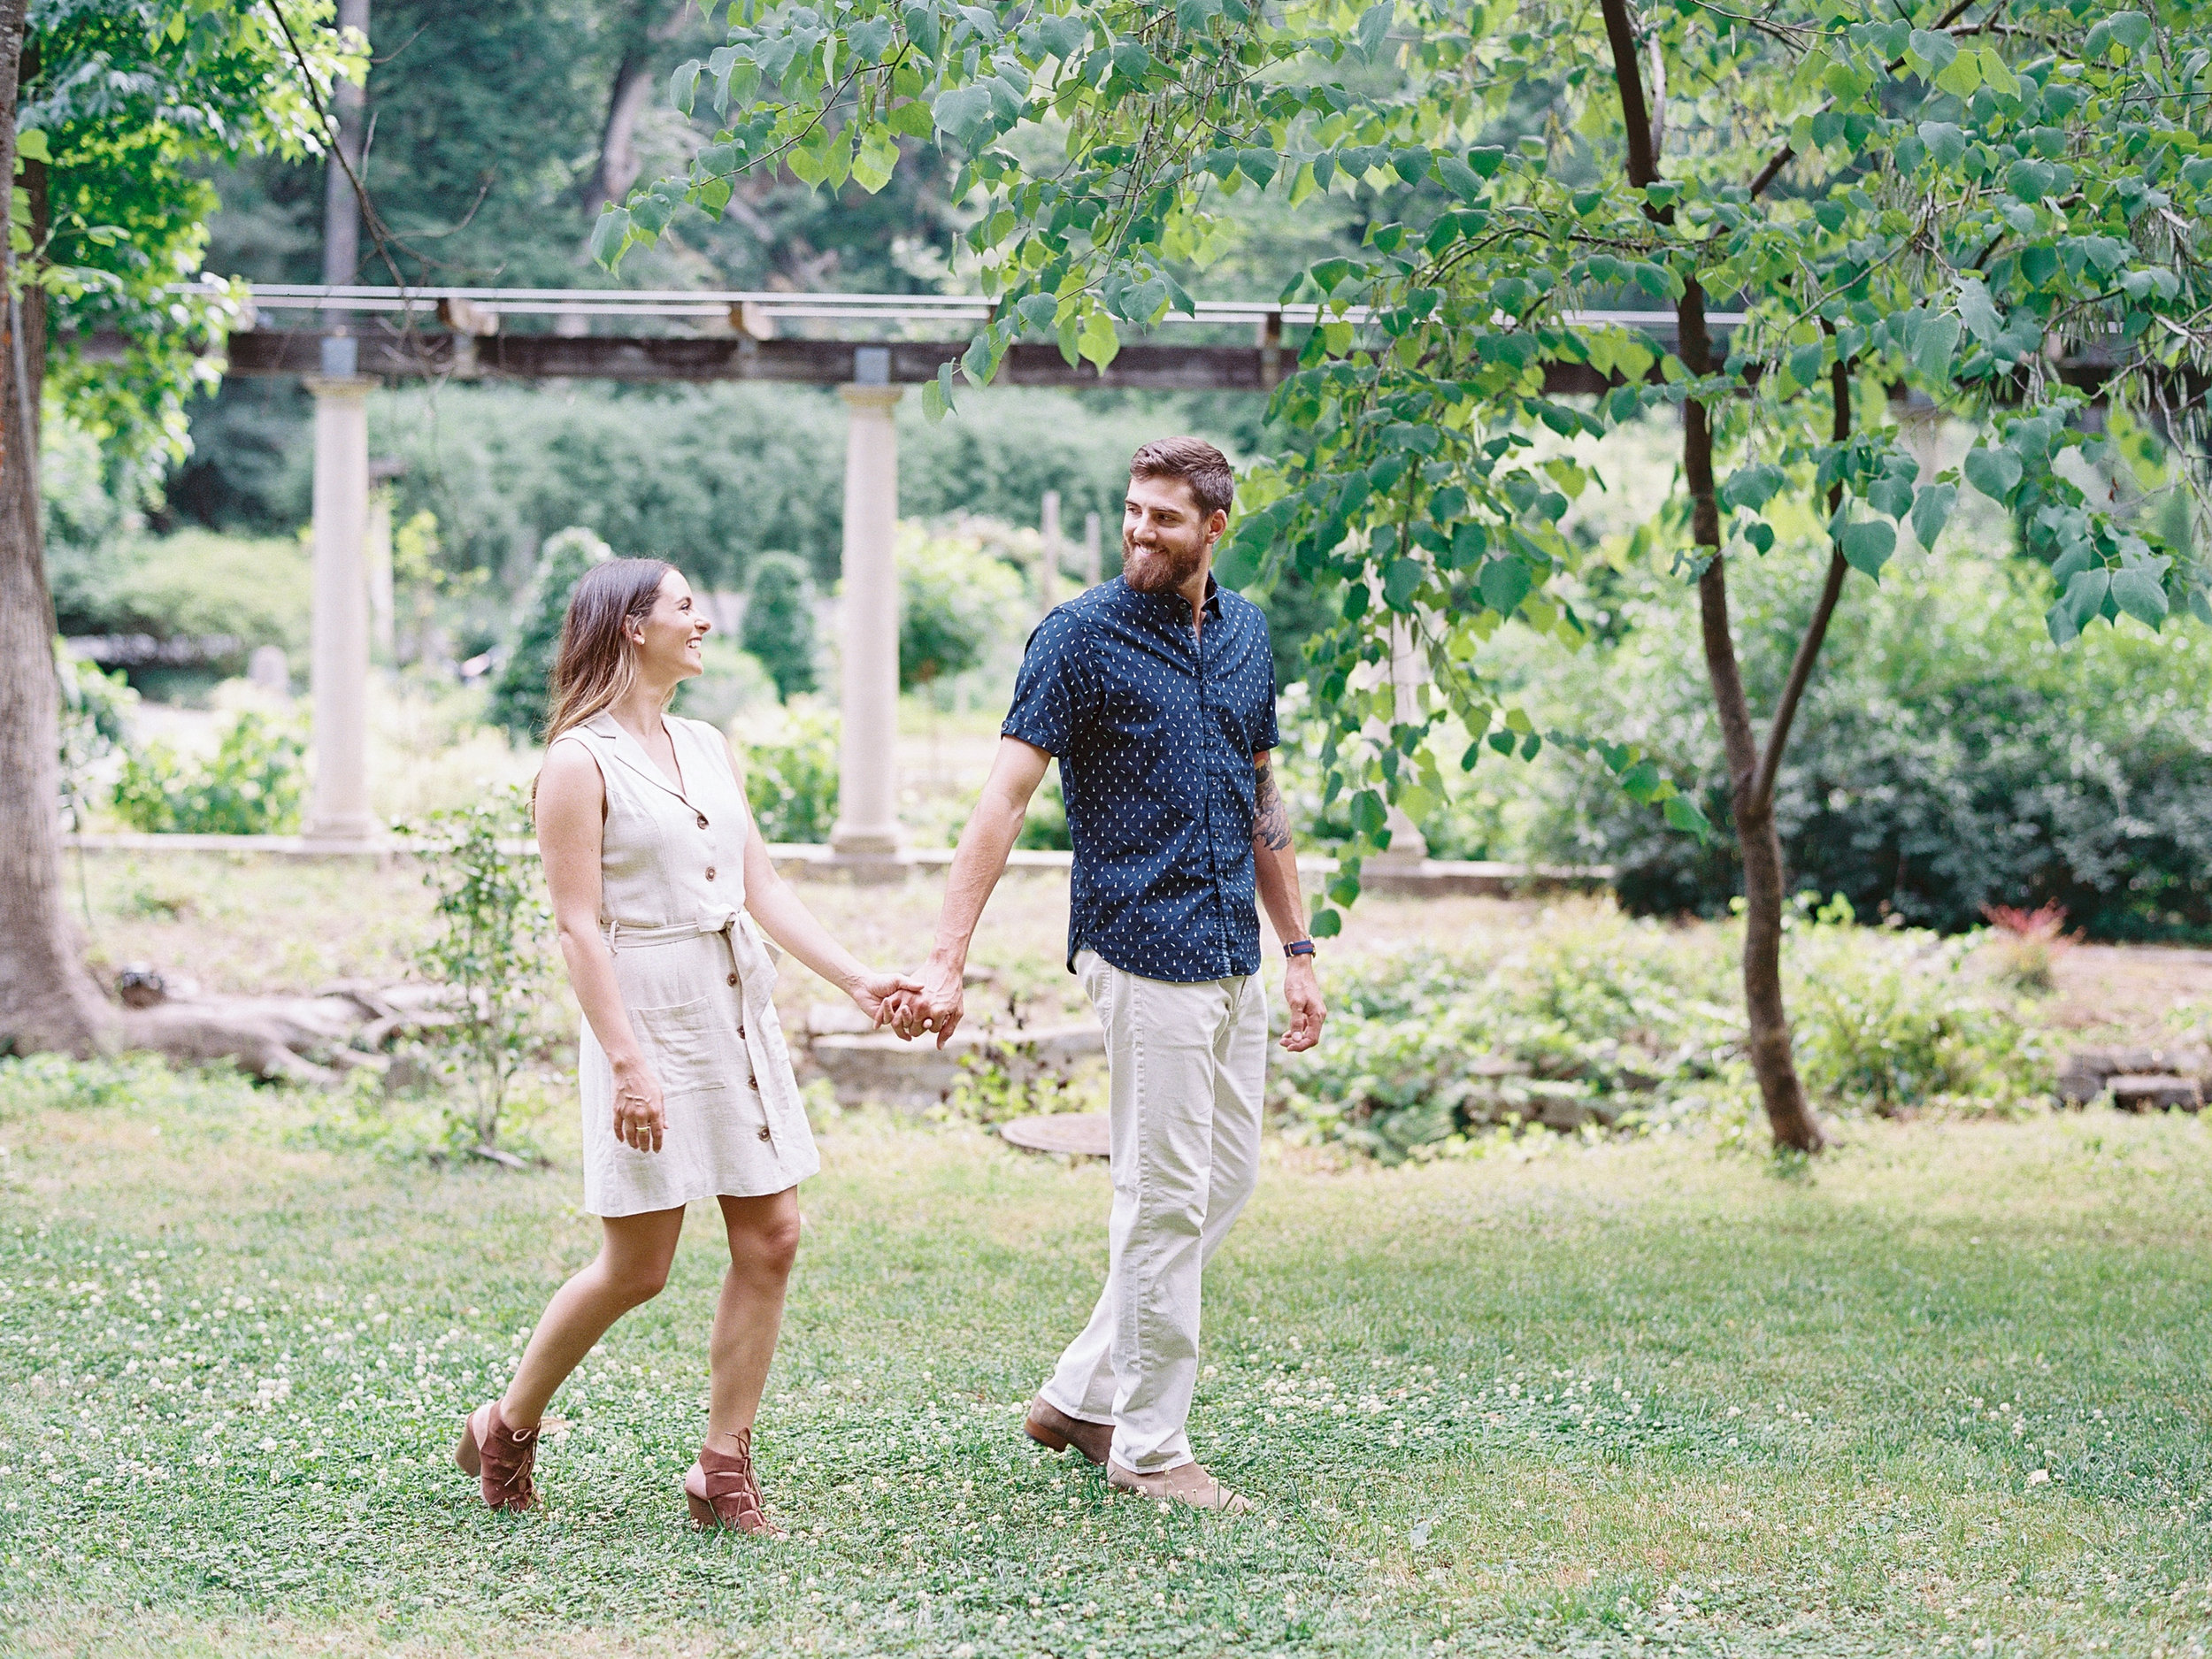 Cator-woolford-gardens-family-photos-atlanta-film-wedding-photographer-16.jpg